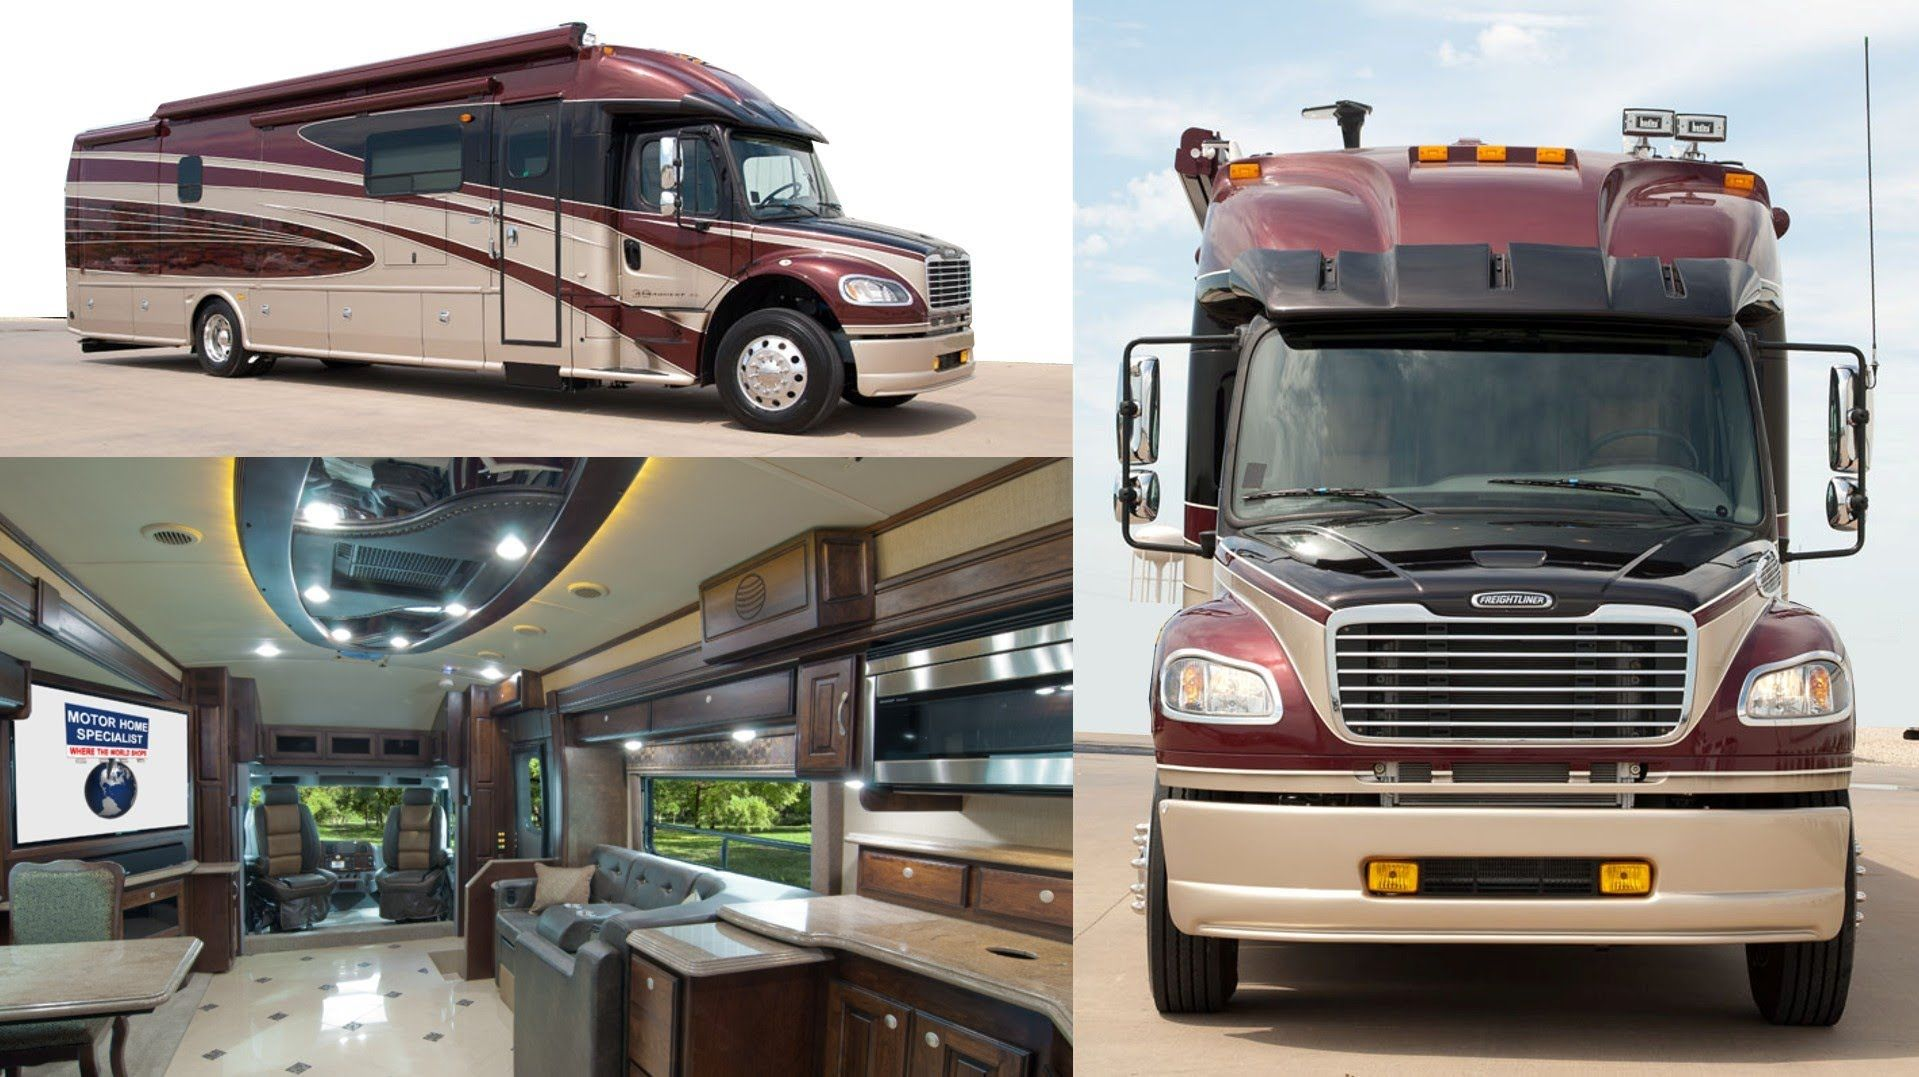 Do It Yourself Home Design: 2014 Dynamax Luxury Super C RV Dynaquest XL At Motor Home